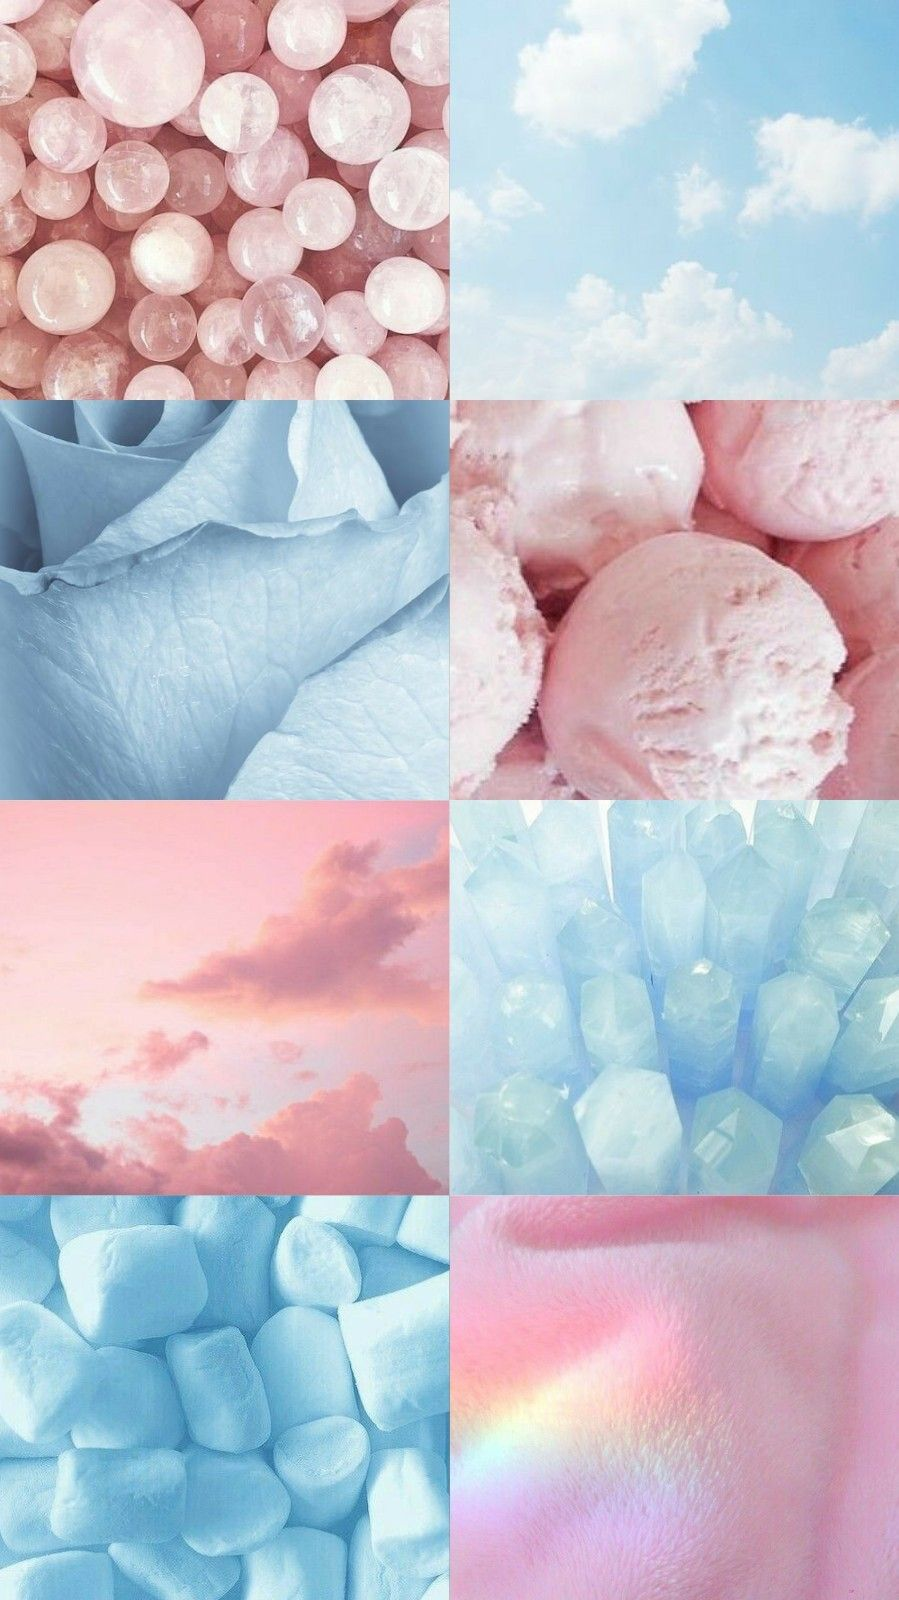 Aesthetic Blue Pink Wallpapers - Top Free Aesthetic Blue ...